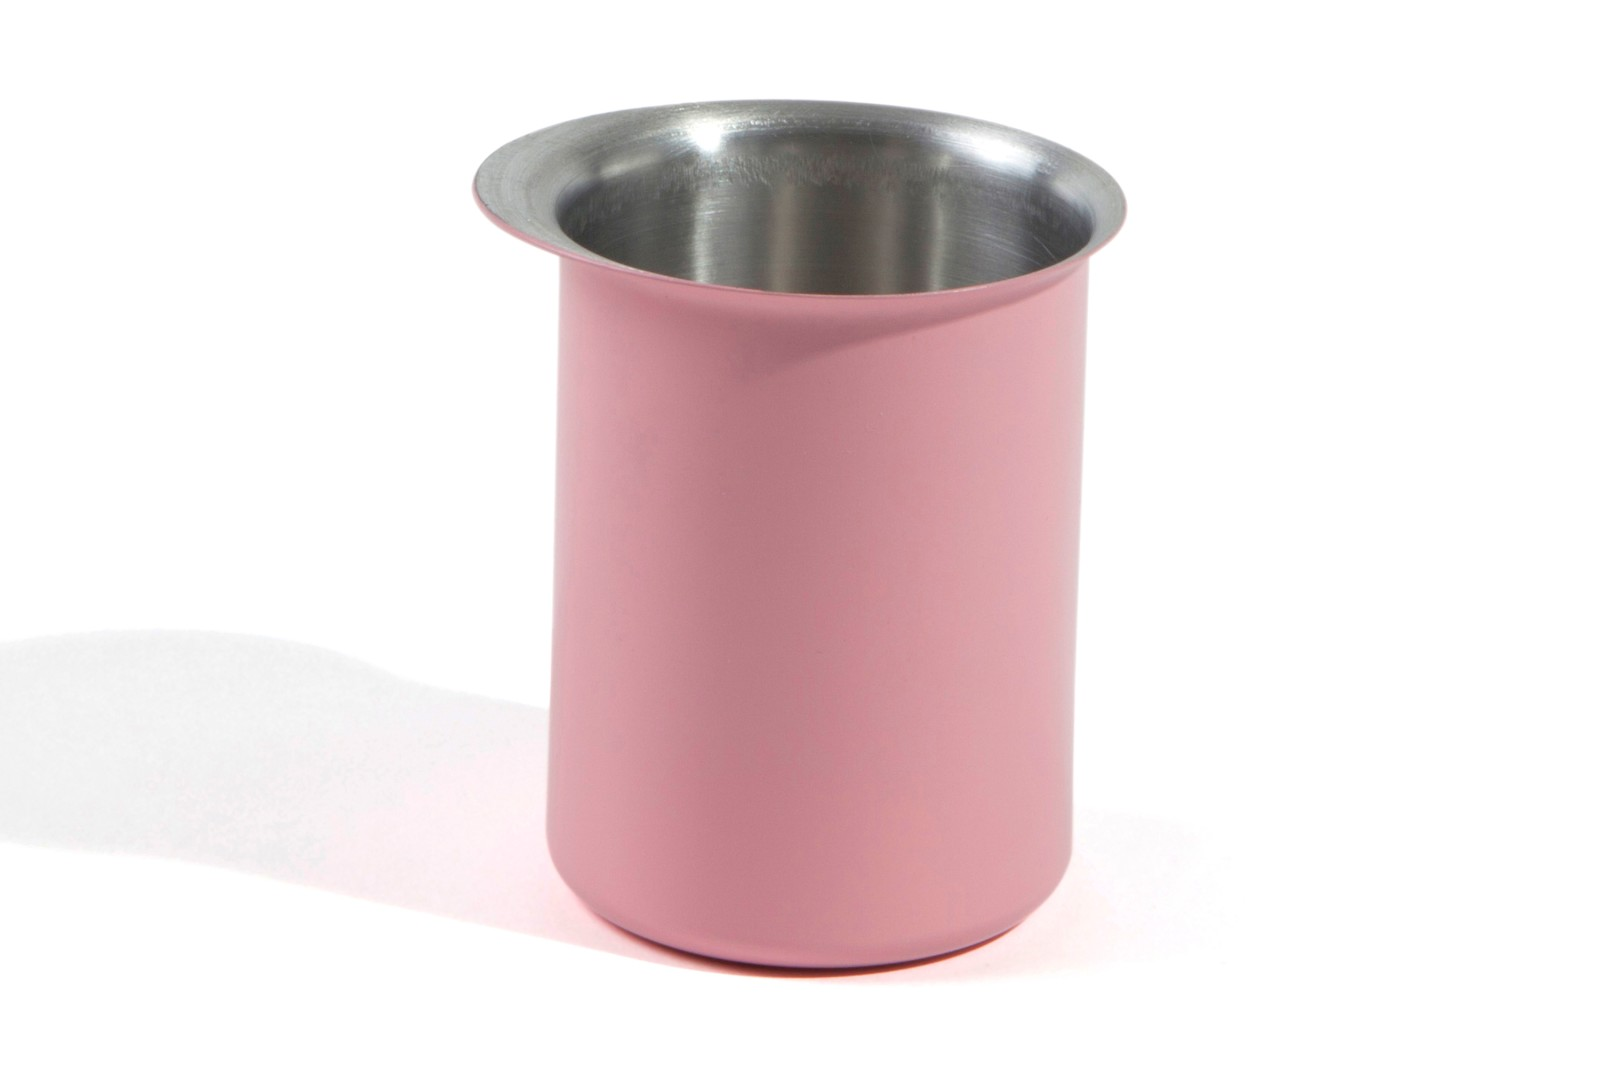 Ayasa Storage Container Pink, 0.35L